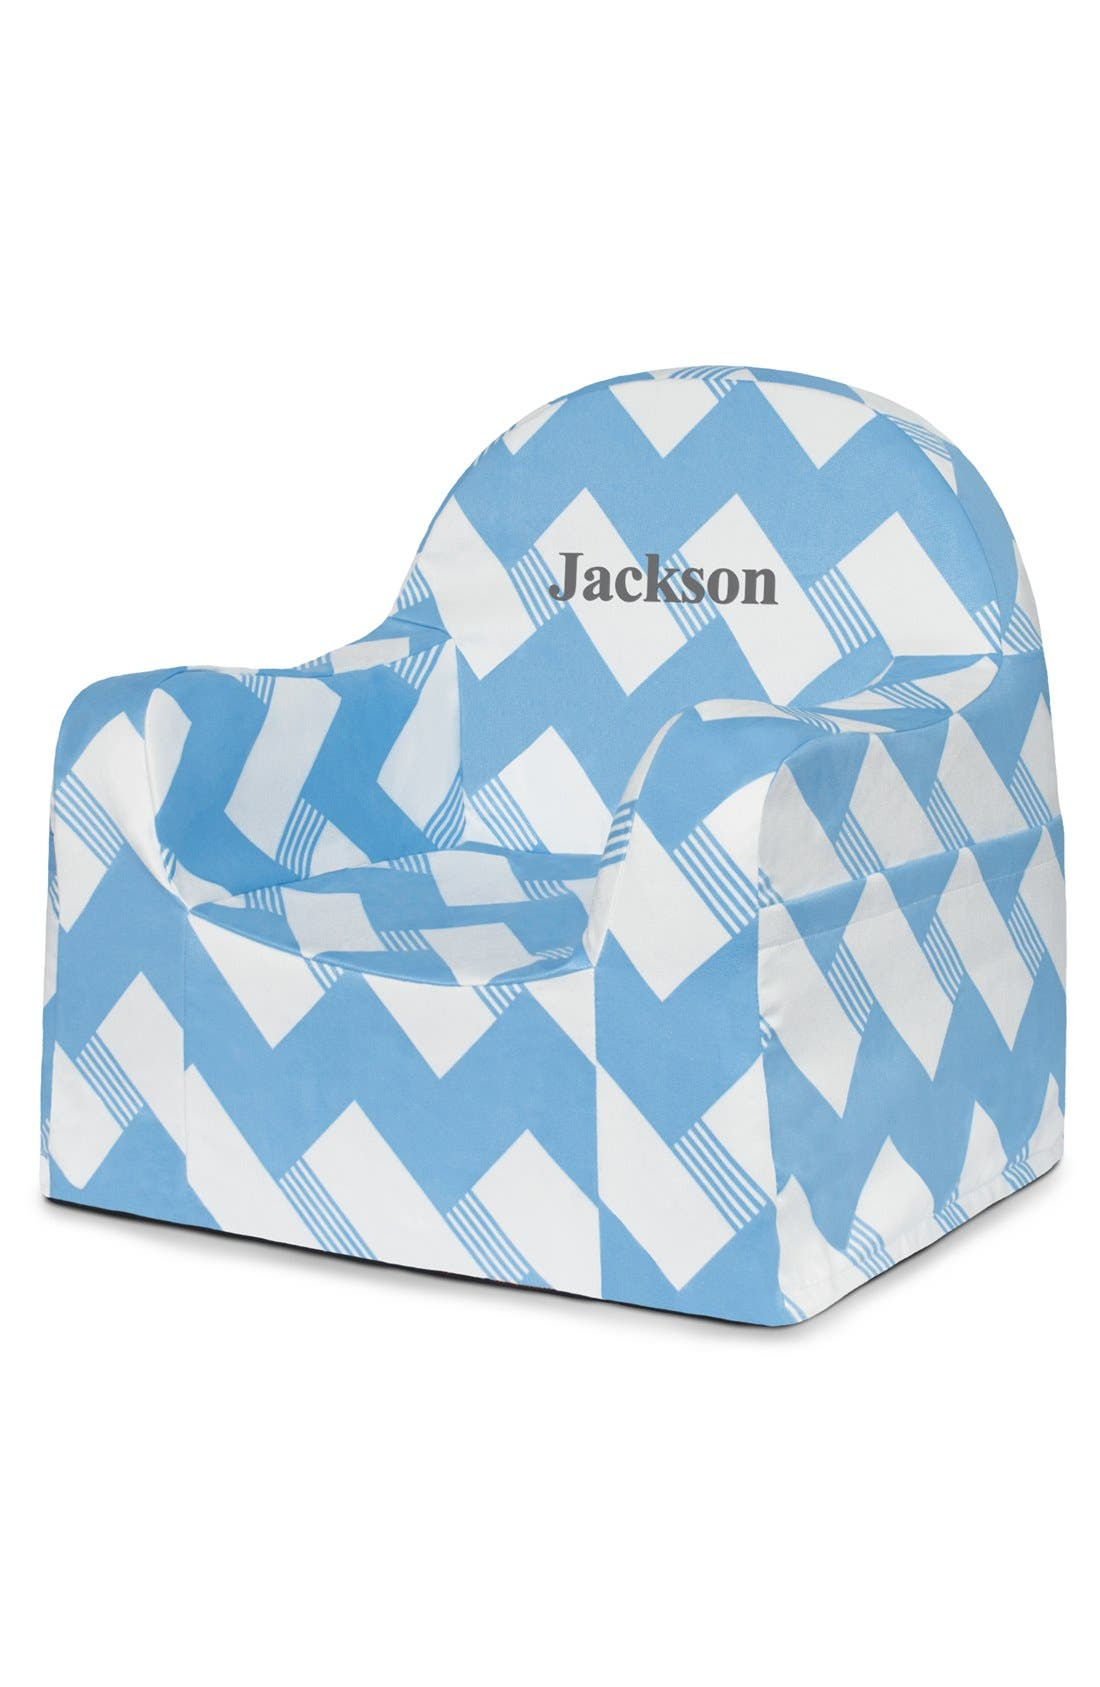 'Personalized Little Reader' Chair,                             Main thumbnail 2, color,